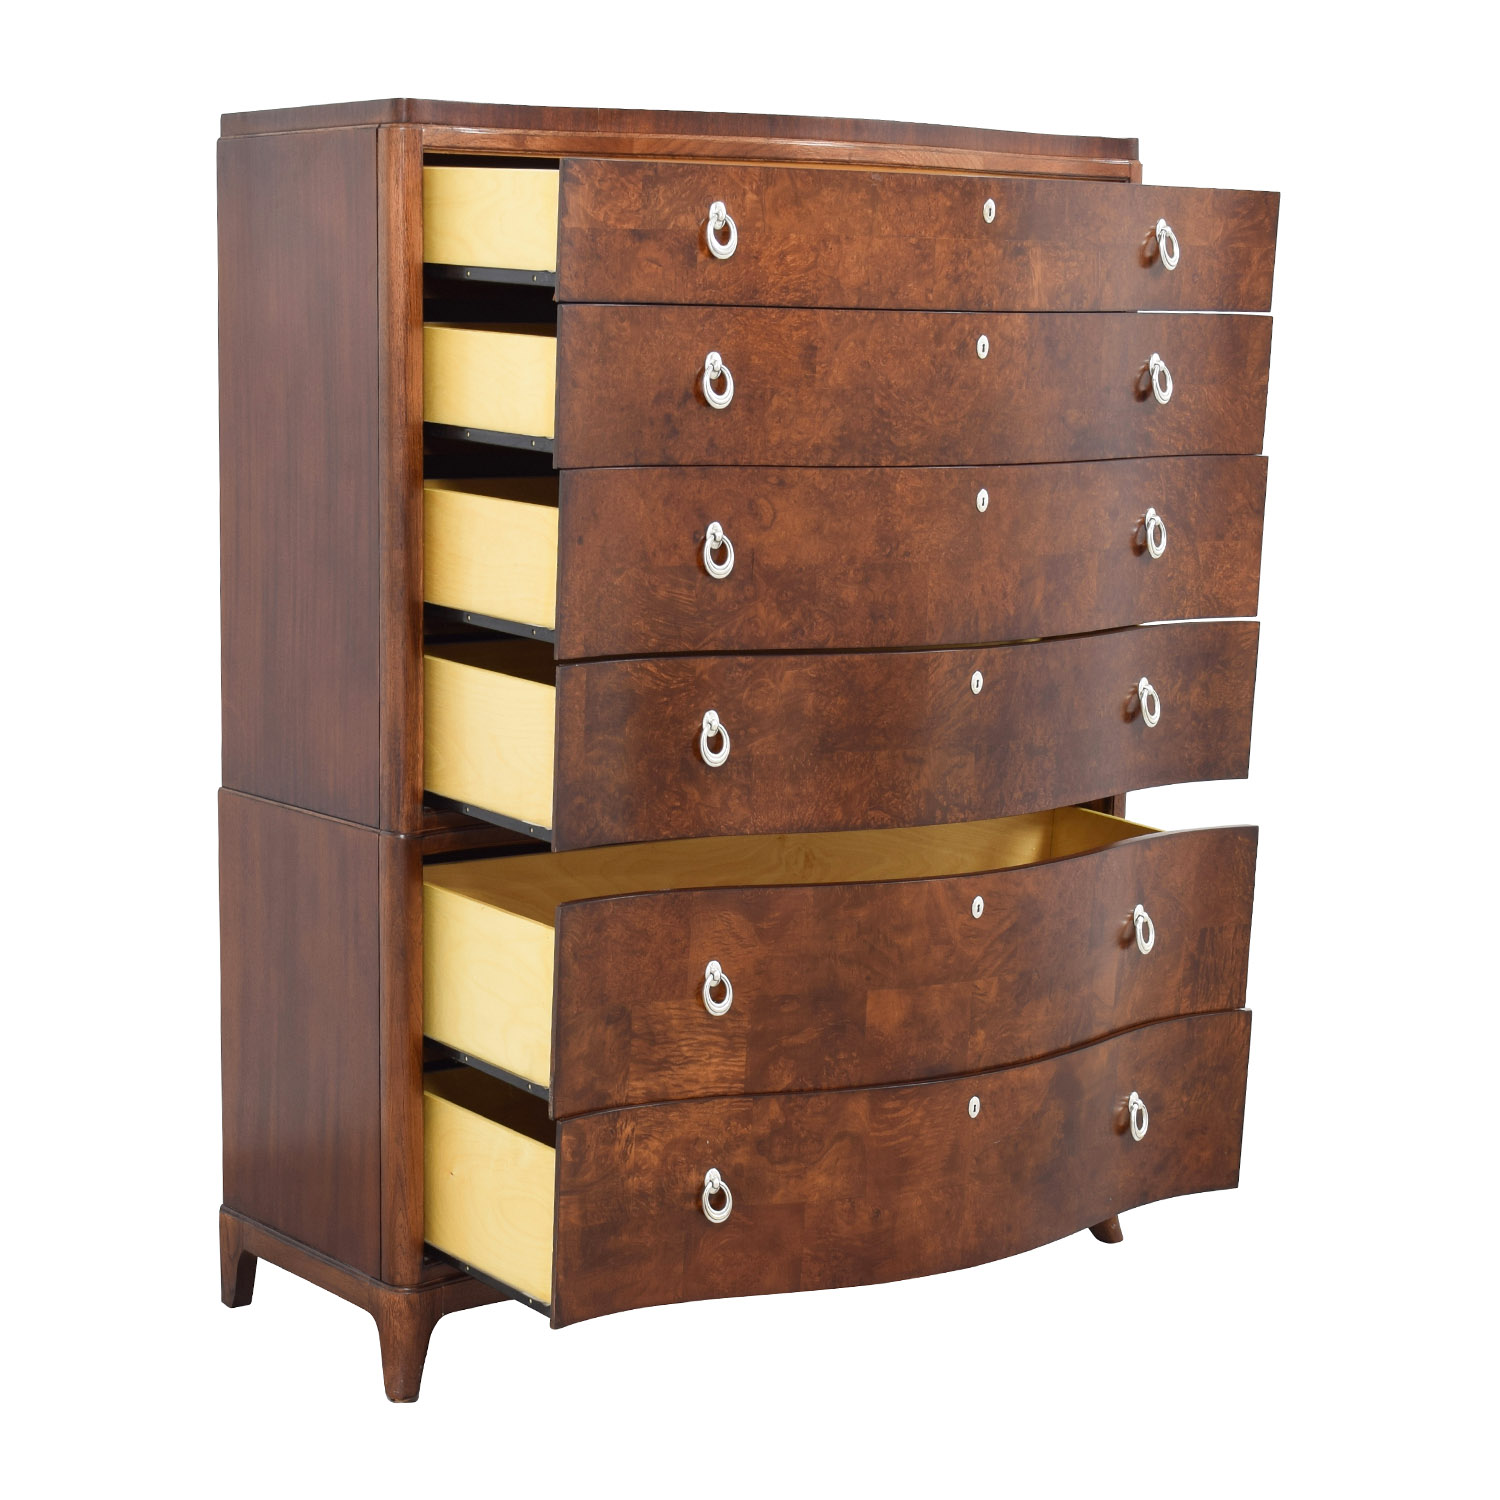 81 Off Thomasville Thomasville Bogart Collection Six Drawer Tall Dresser Storage